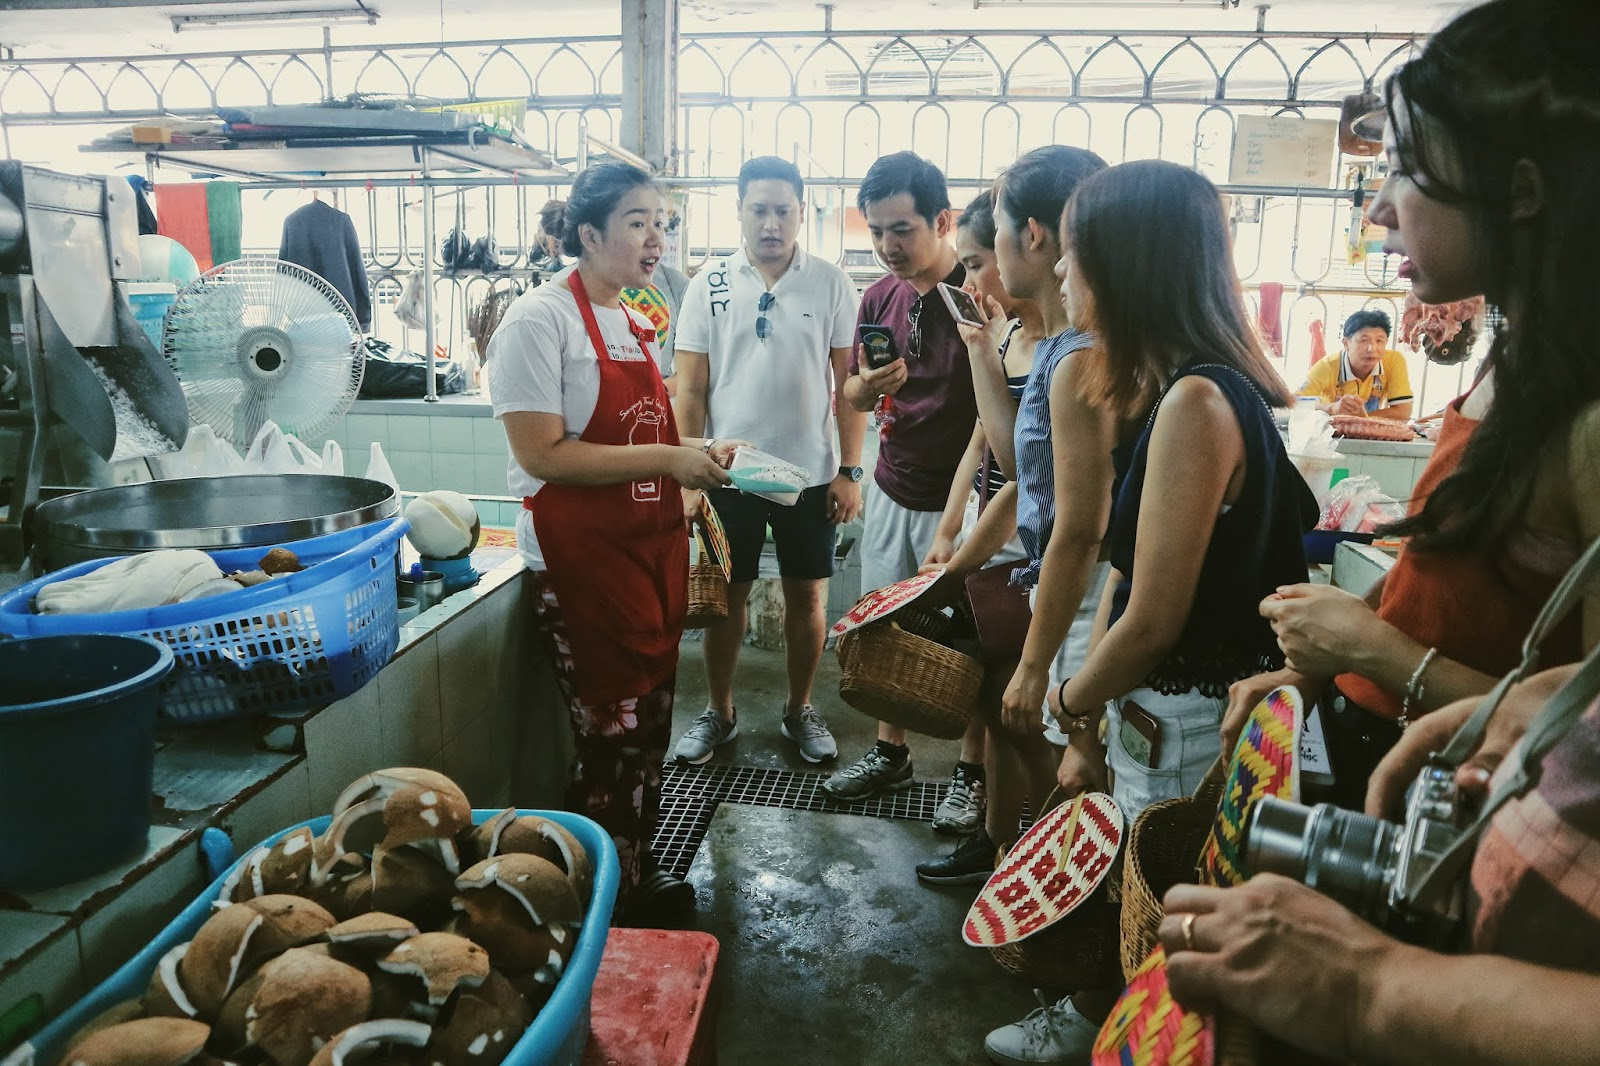 The group in the public market